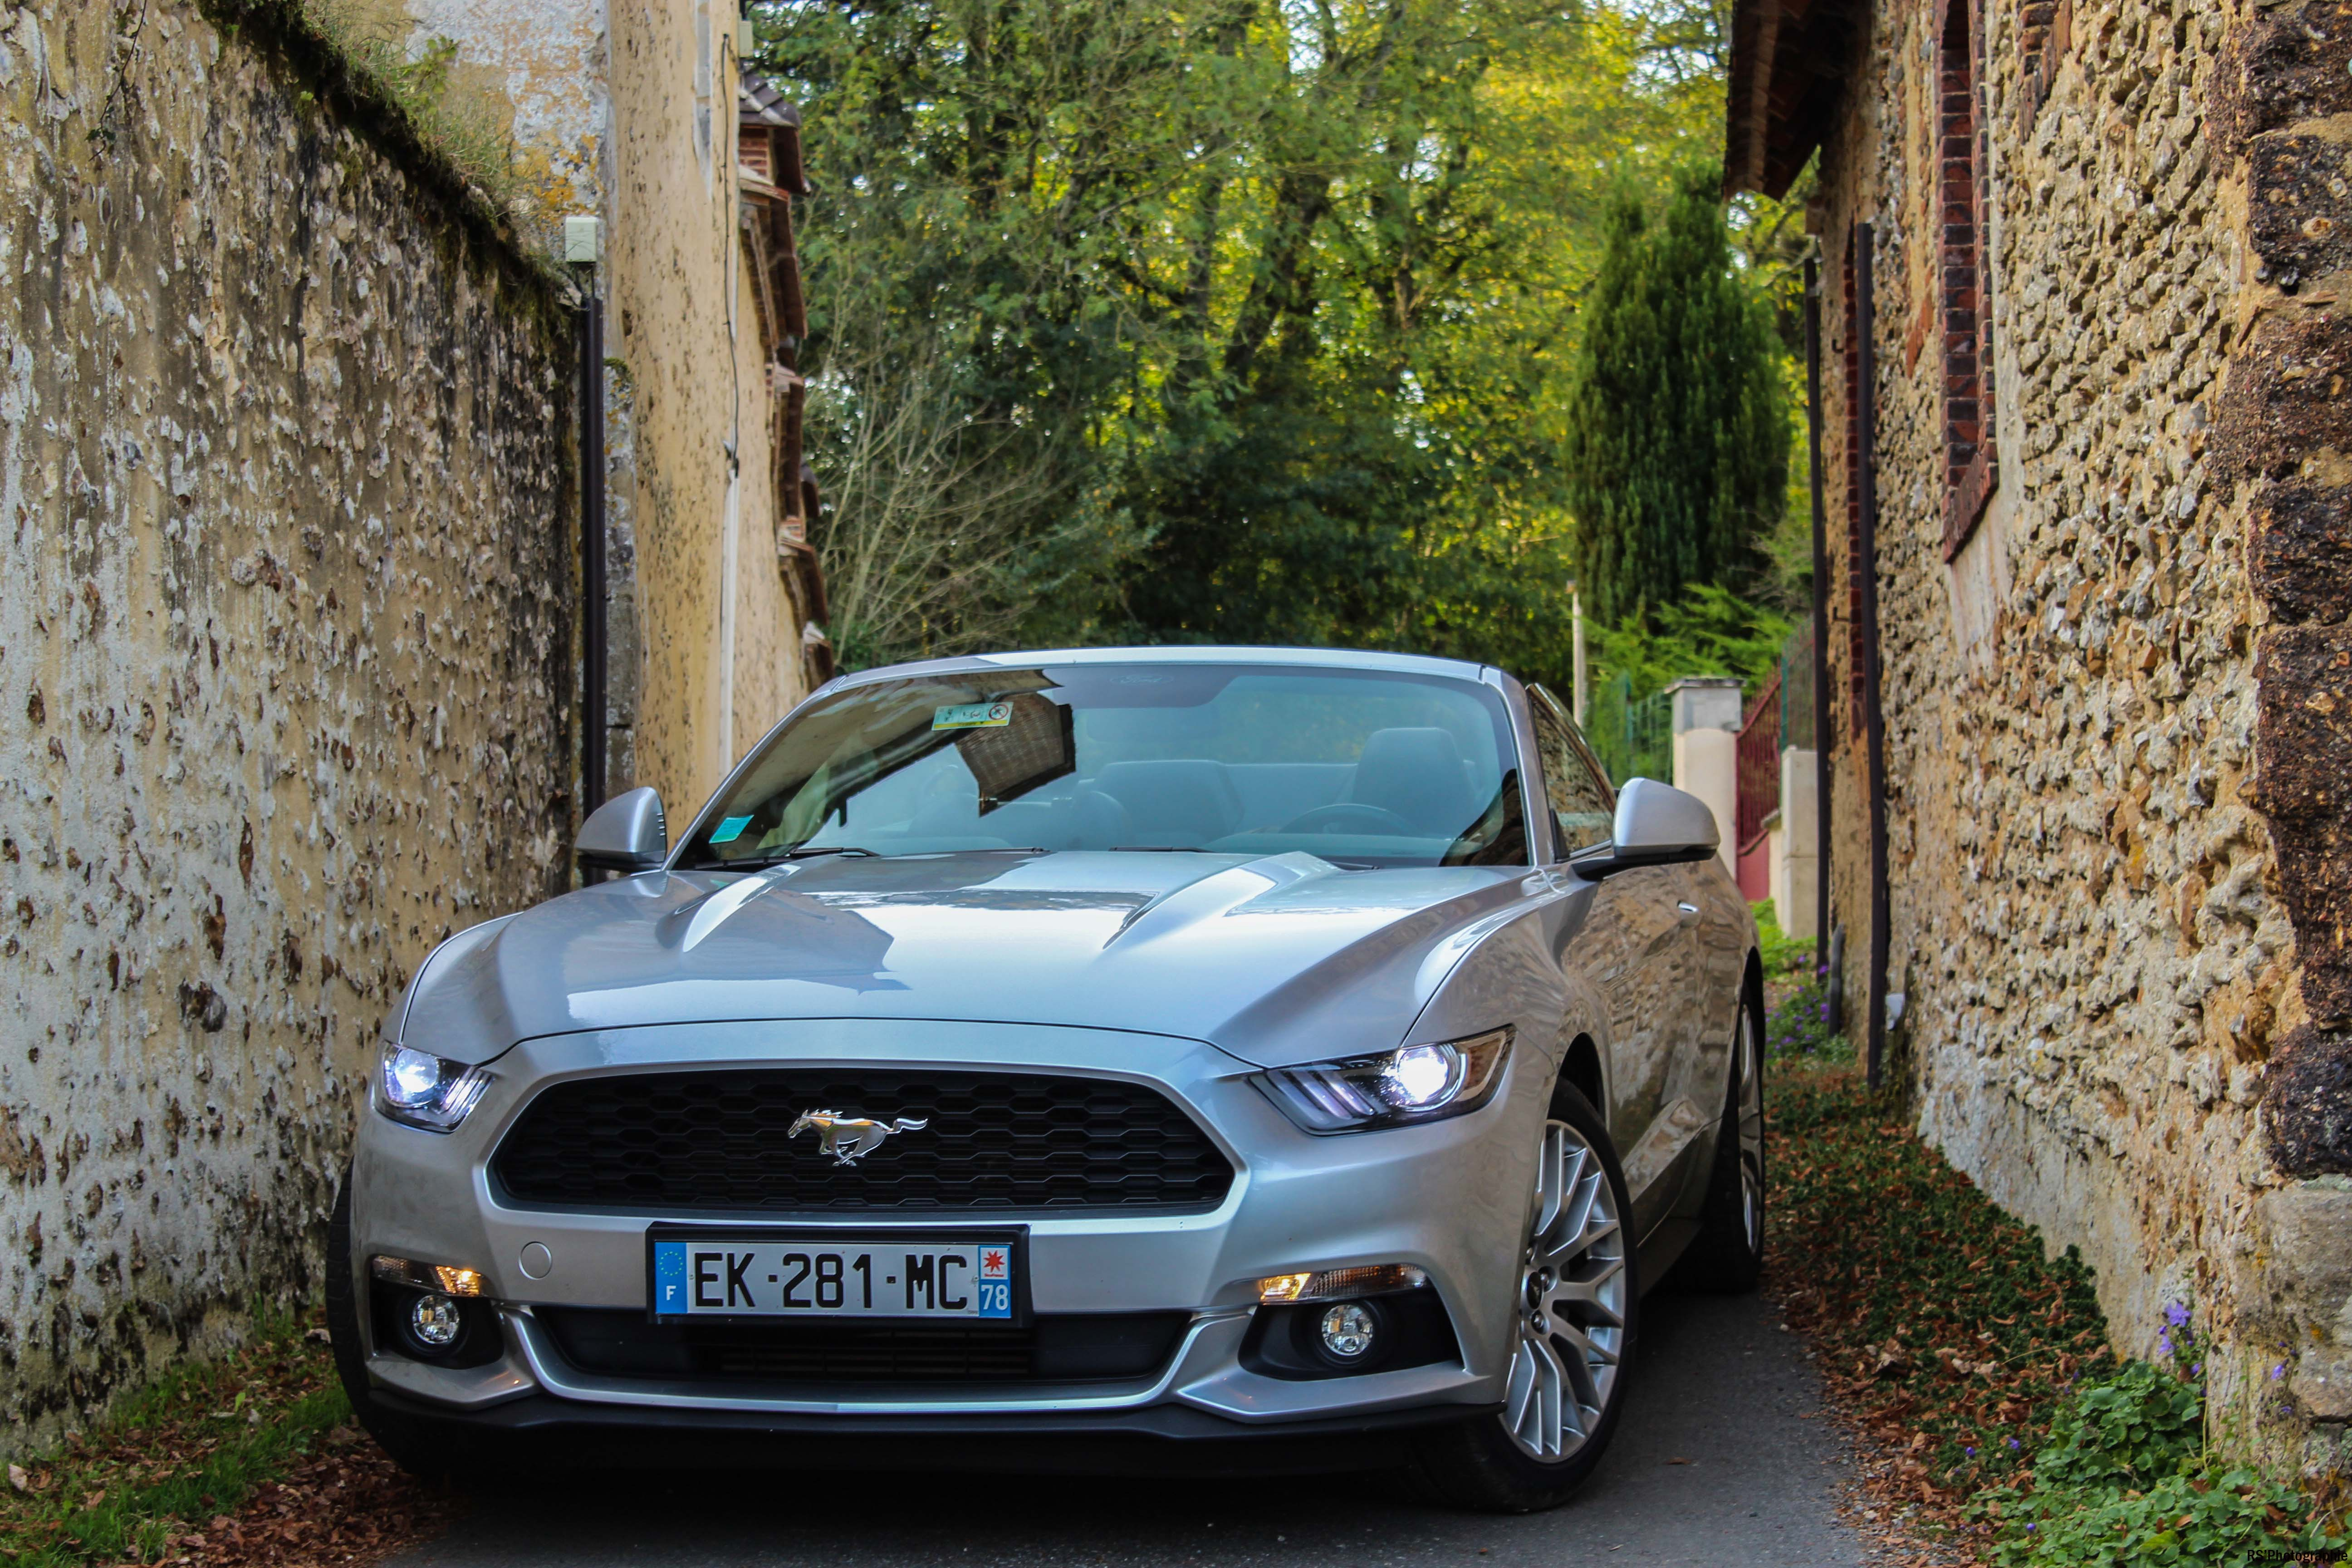 fordmustangeconvertible77-ford-mustang-convertible-ecoboost-avant-front-Arnaud Demasier-RSPhotographie